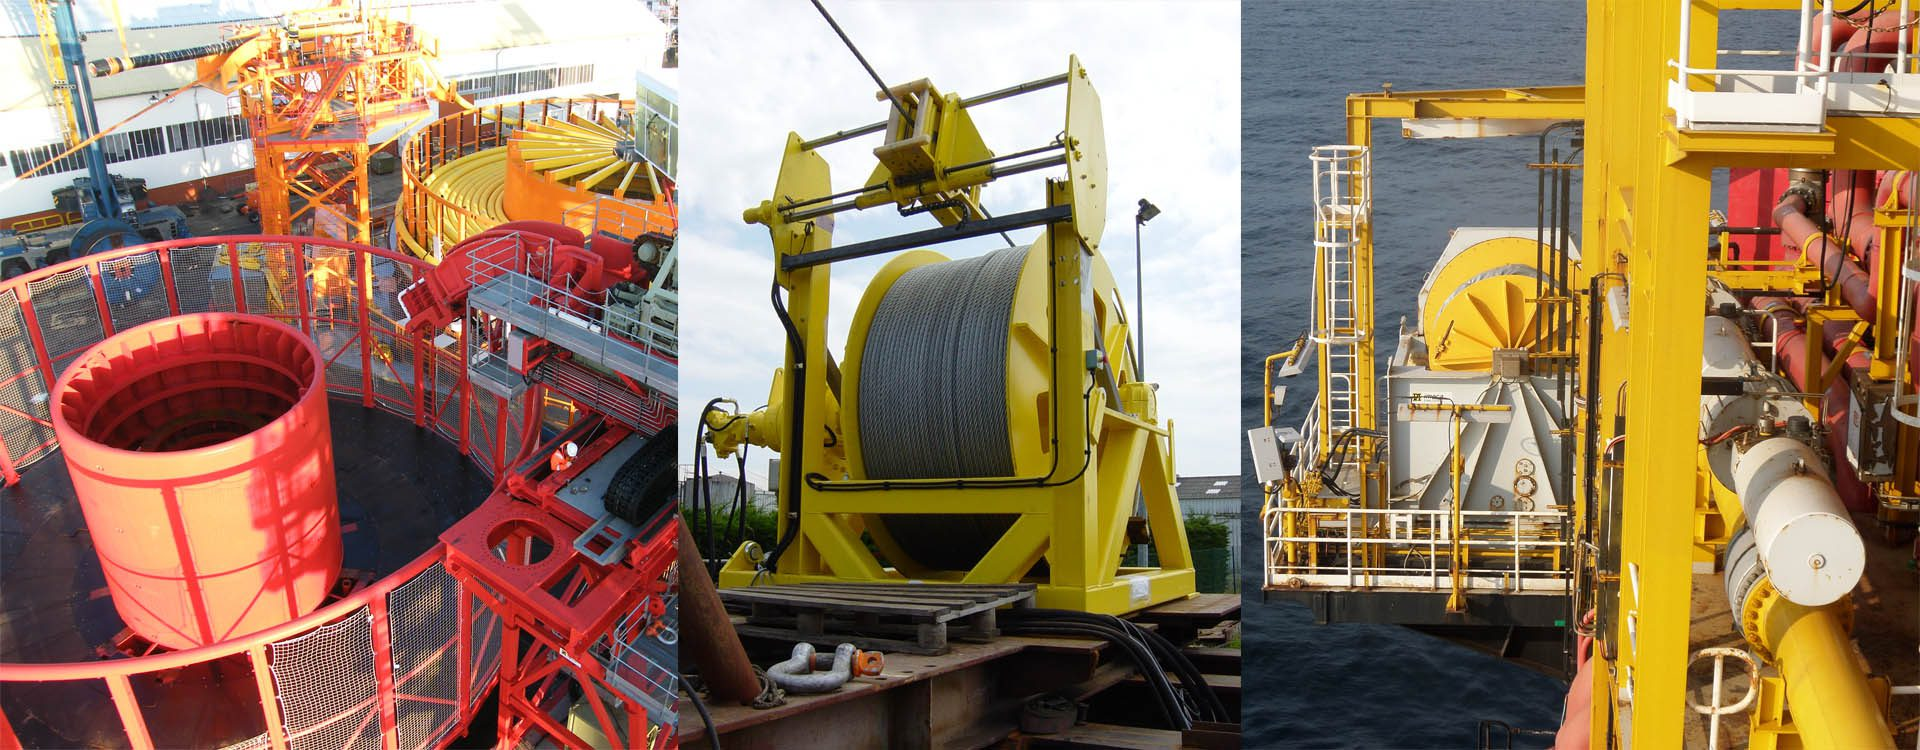 Offshore handling winches